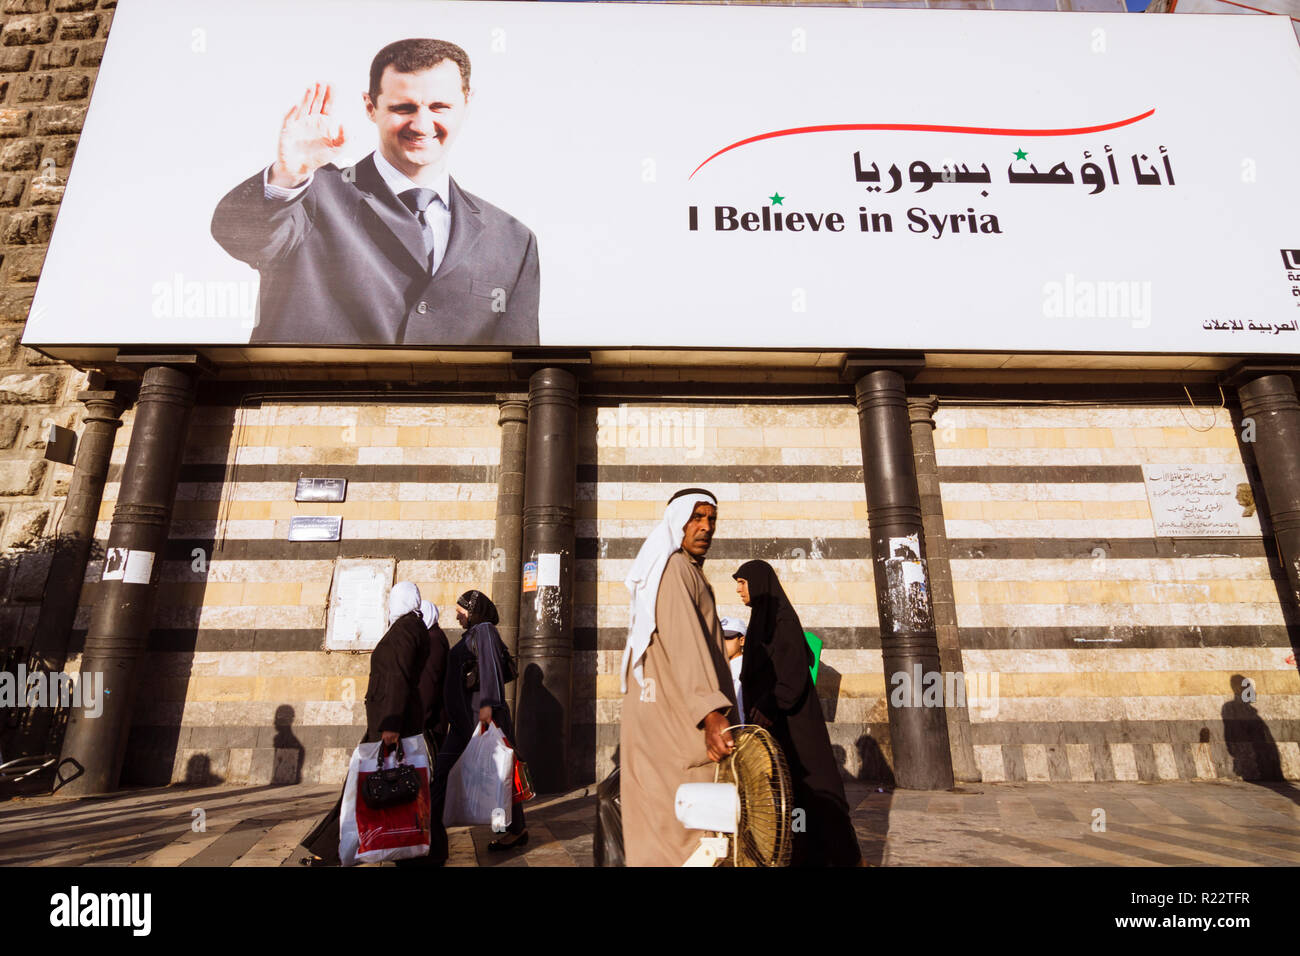 Damascus, Syria : People walk past a billboard of the president of Syria Bashar al-Assad reading I believe in Syria. - Stock Image